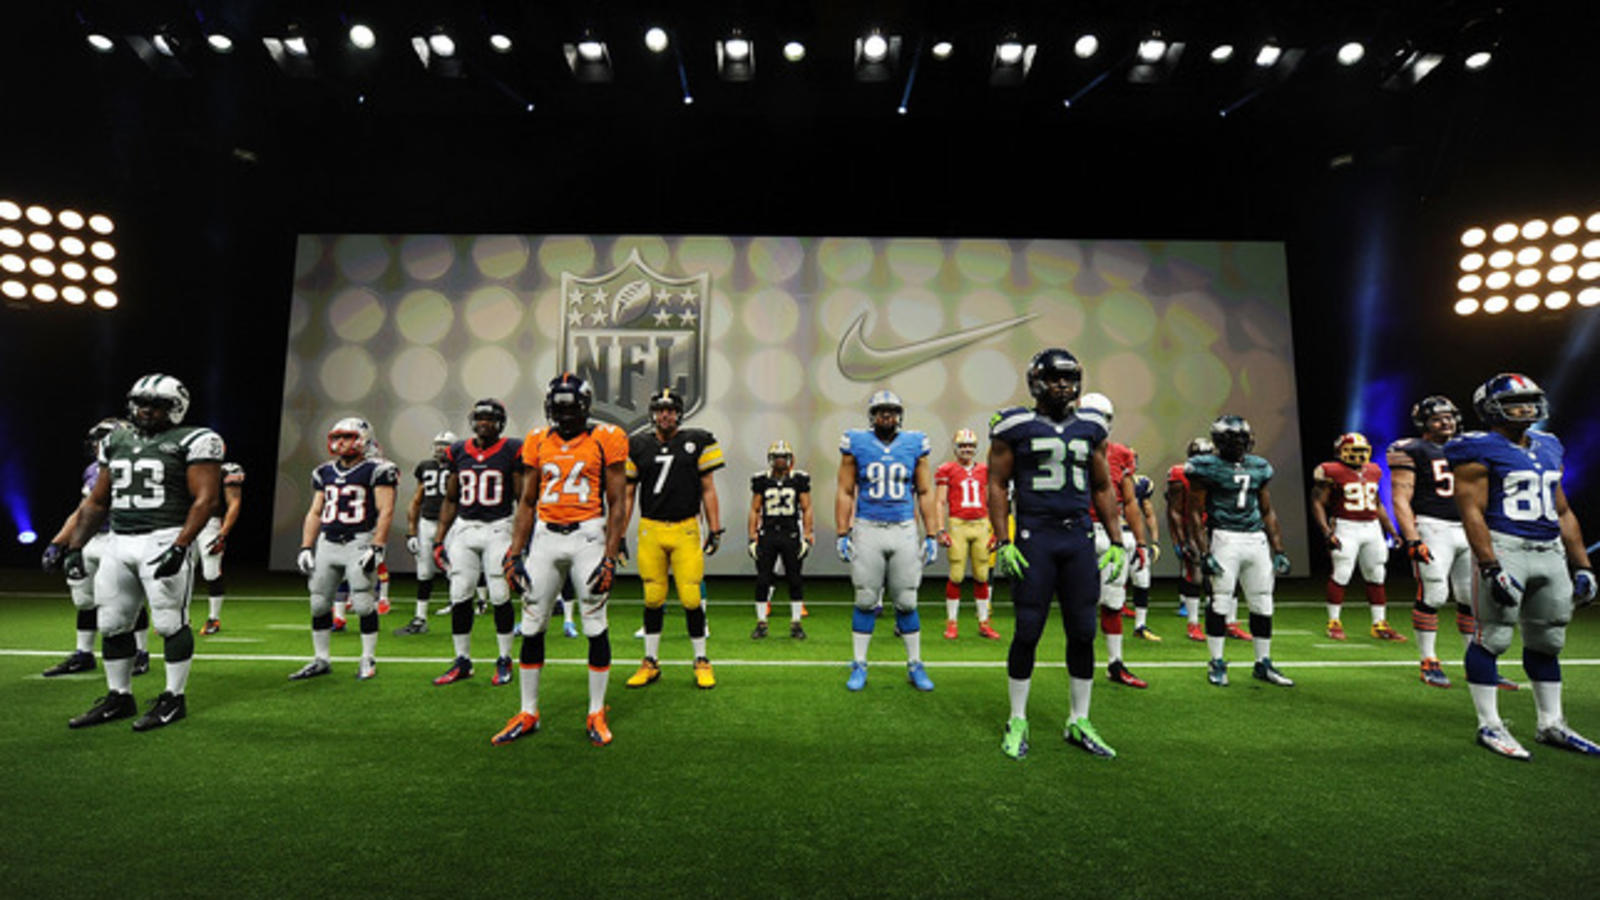 962751307c8 Nike_NFL_UniformUnveil_Players01_03APR2012_large.  Nike_NFL_2012_TeamUniforms_03APR_large.  Nike_NFL_UniformUnveil_Players01_03APR2012_large